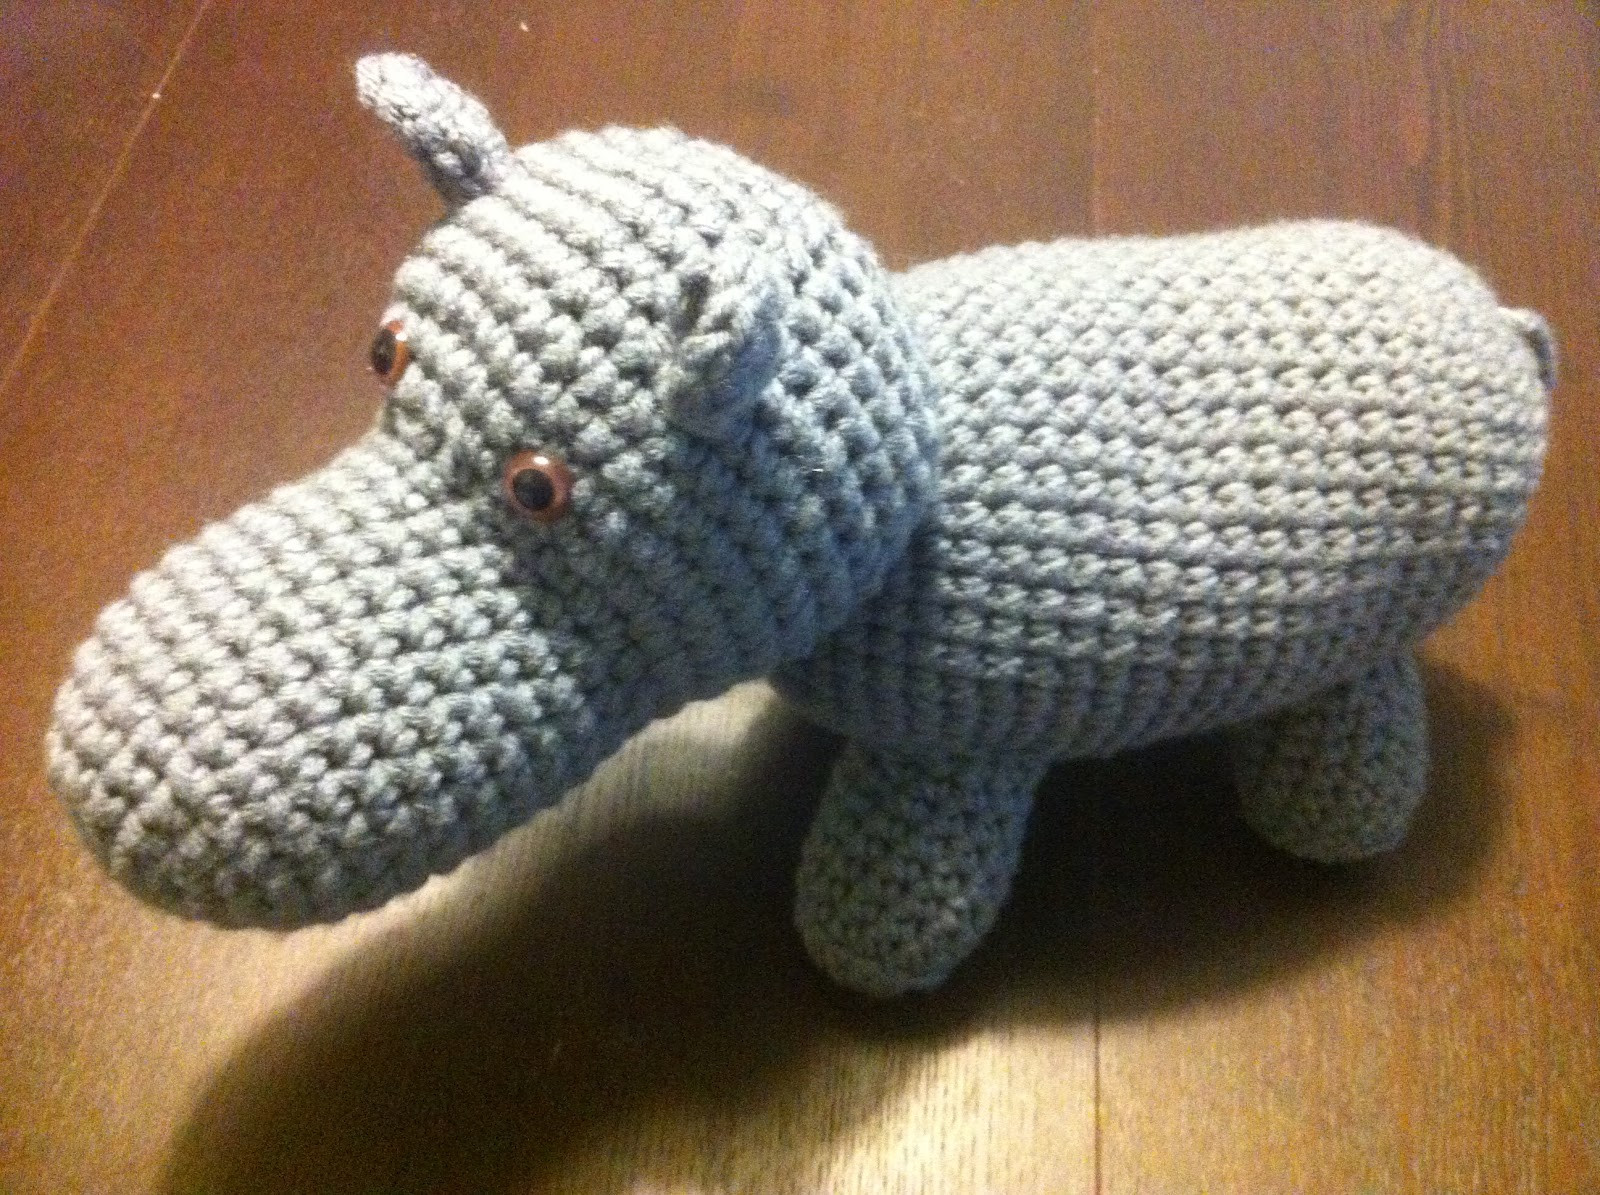 Crochet Hippo Pattern Free Unique Tansy Dolls Crochet Hippo Pattern Of Awesome 40 Pics Crochet Hippo Pattern Free